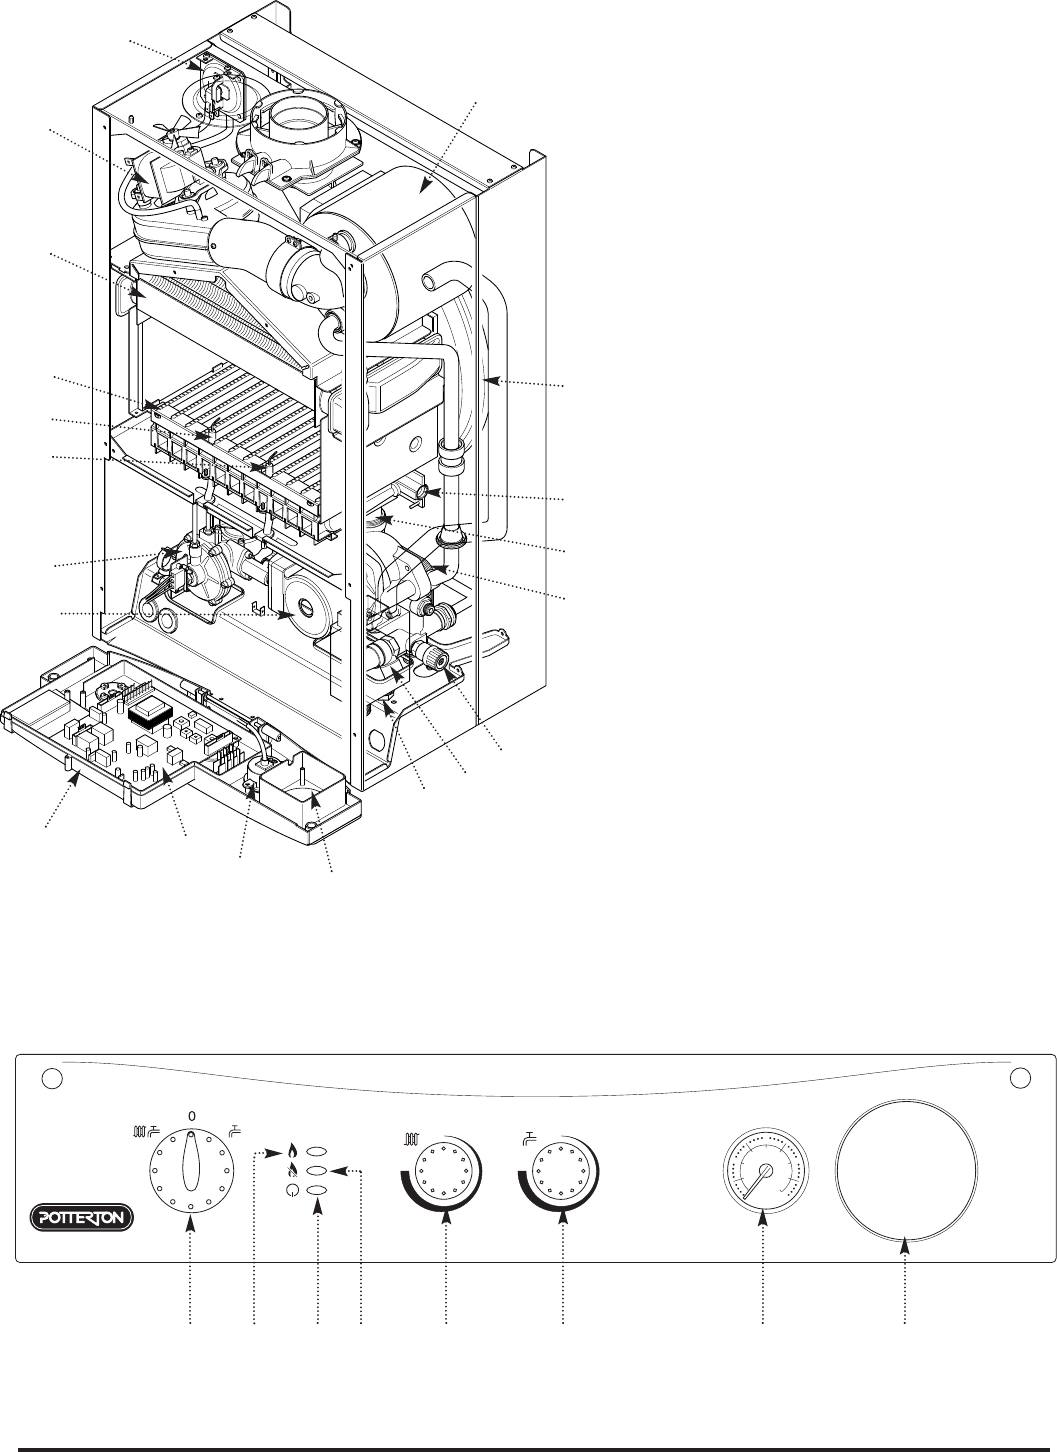 Potterton Precision Boiler Manual Pdf